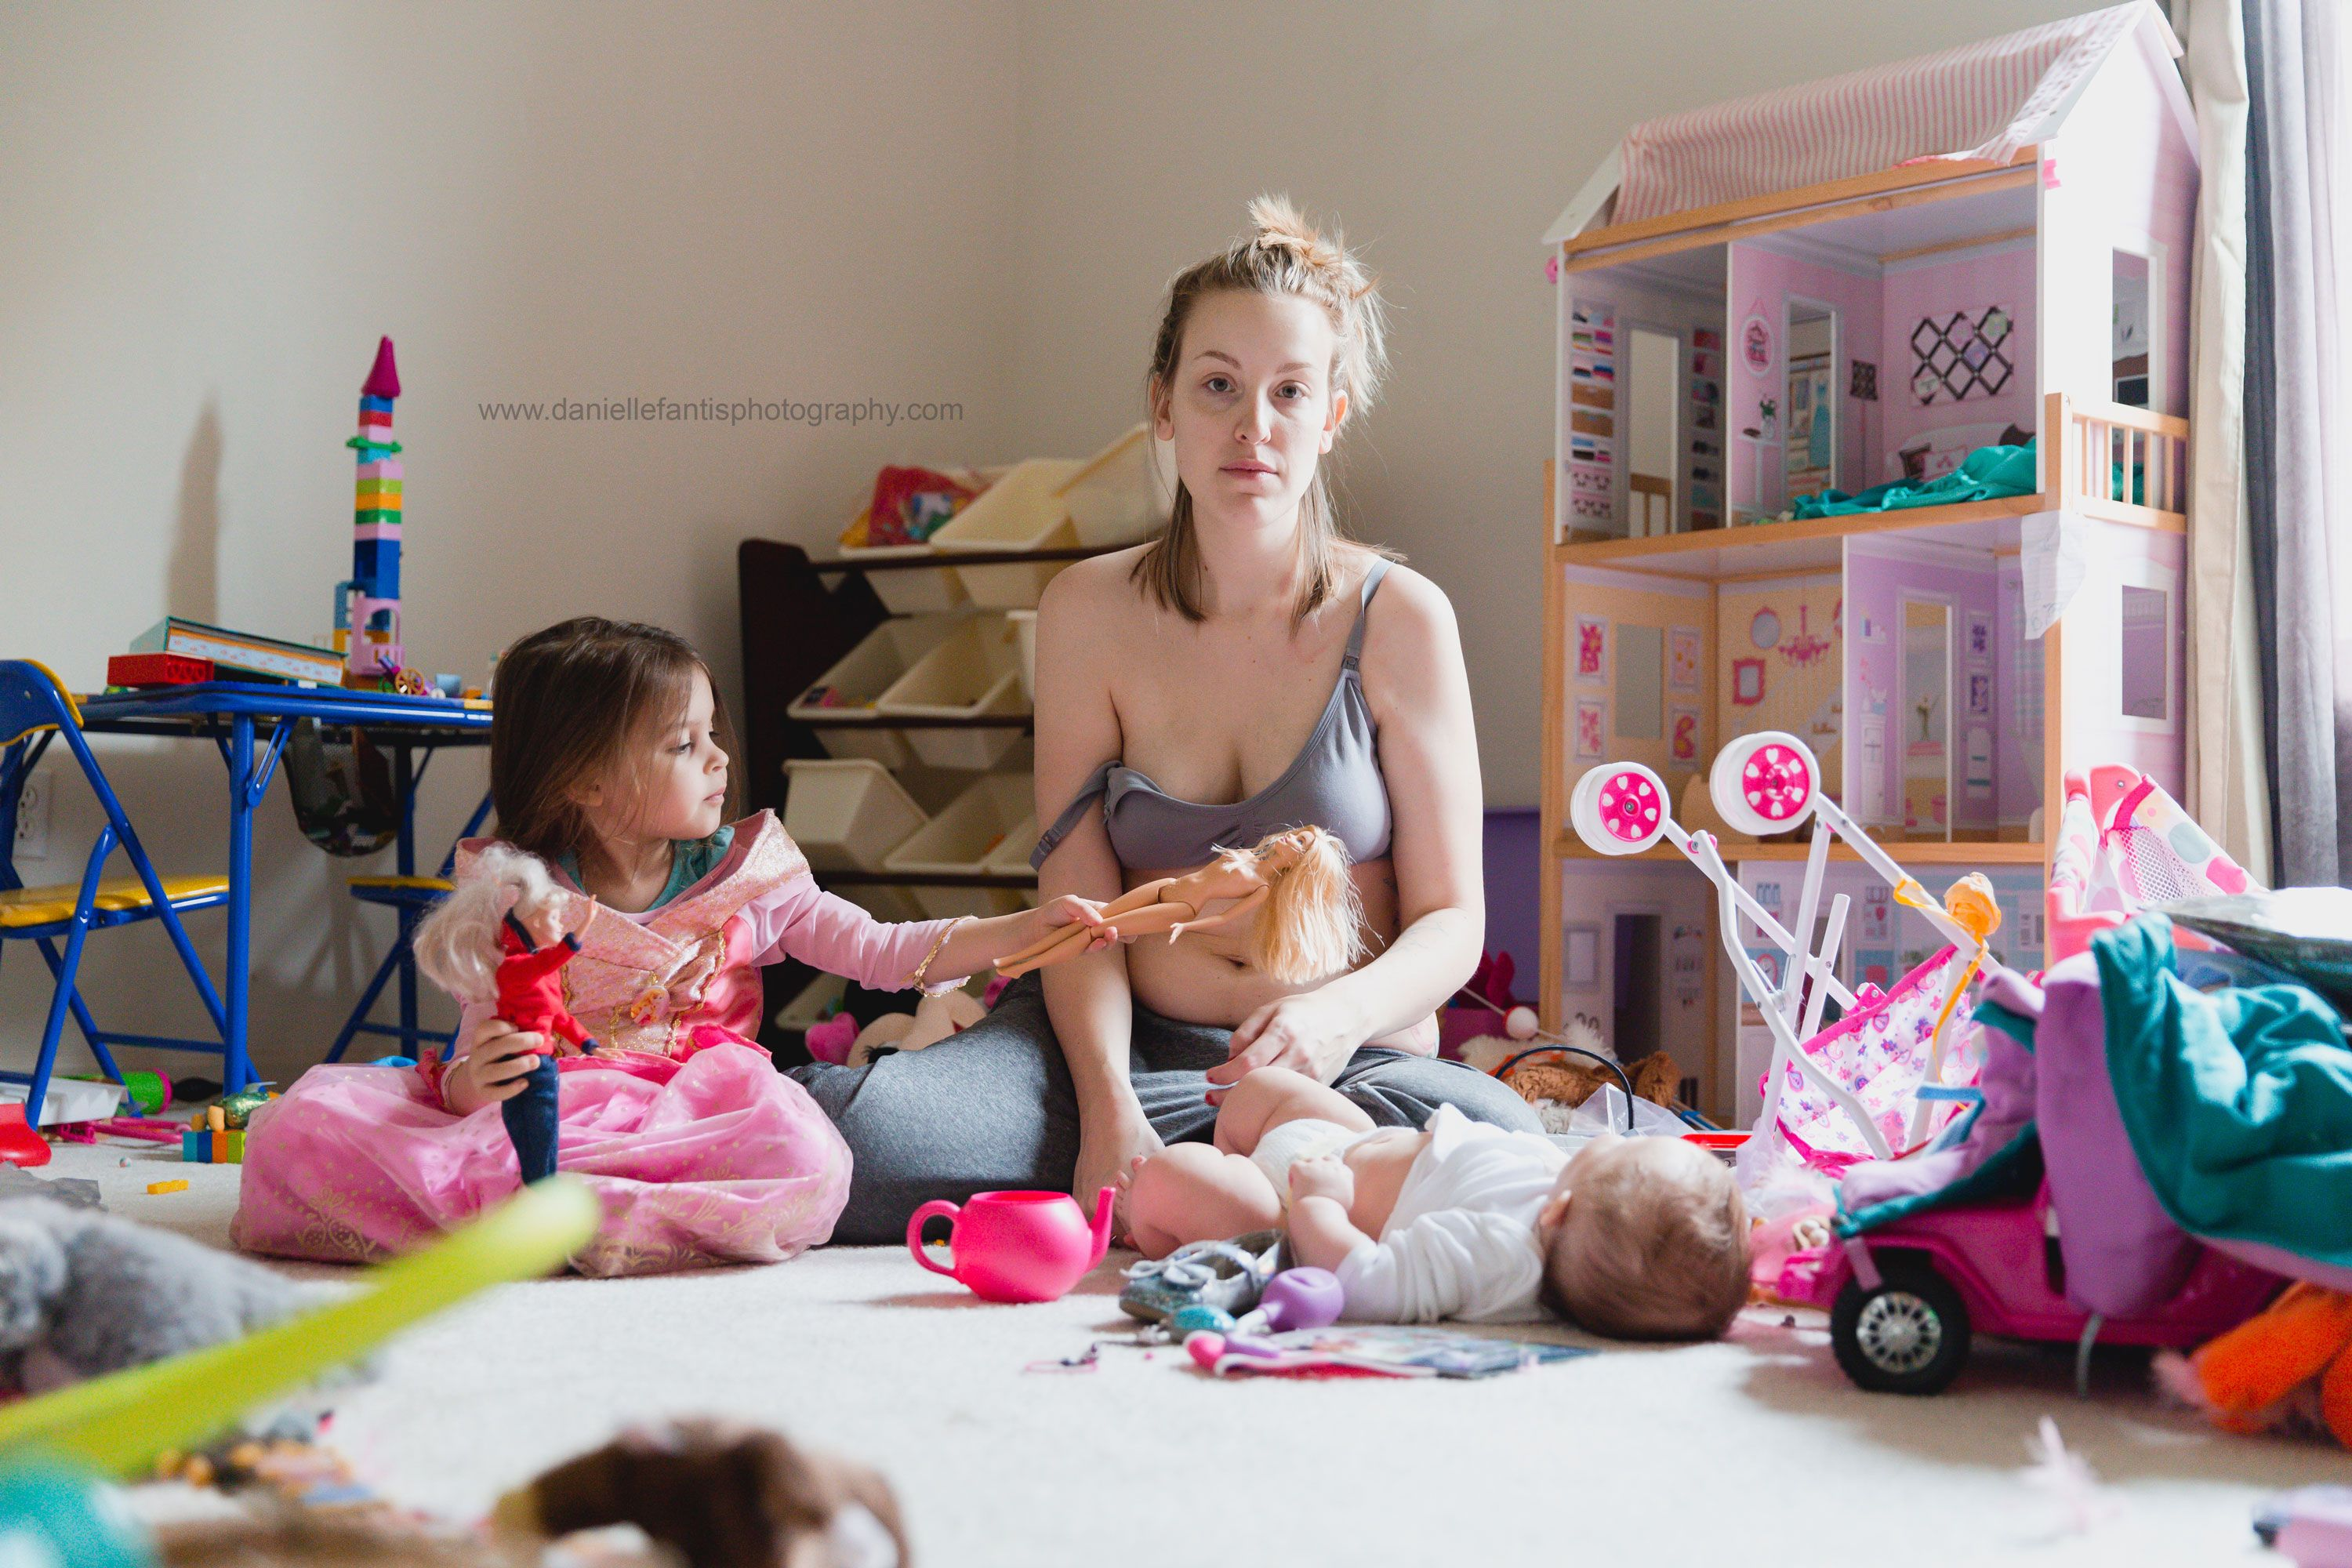 This viral photo perfectly shows the reality of postpartum depression